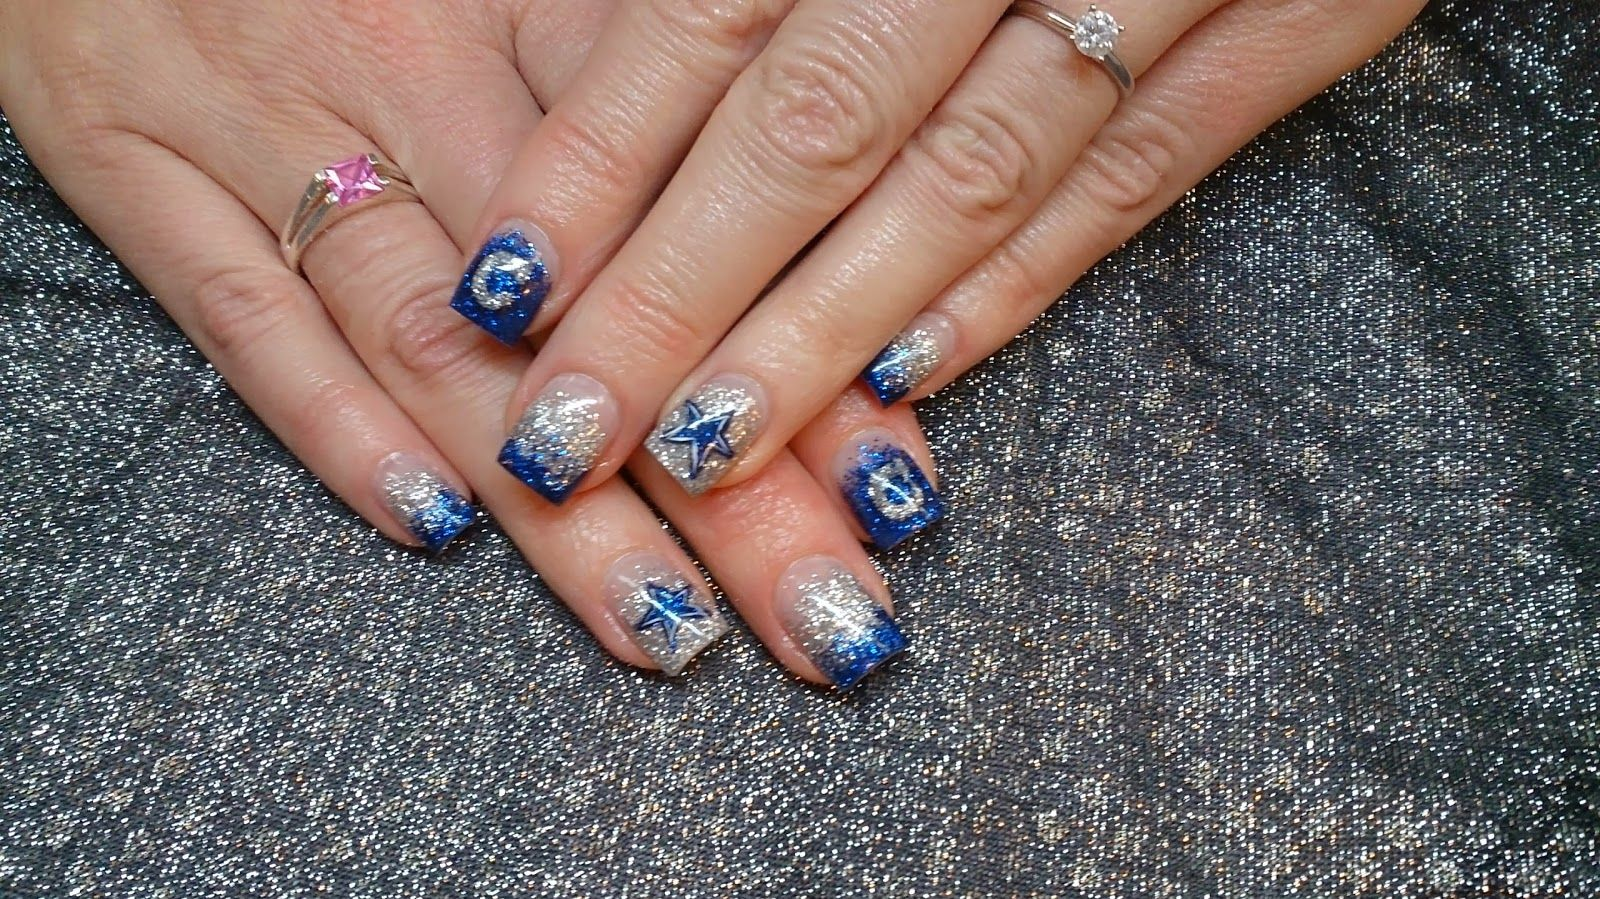 dallas cowboys nail design | nail ideas | Pinterest | Dallas cowboys ...